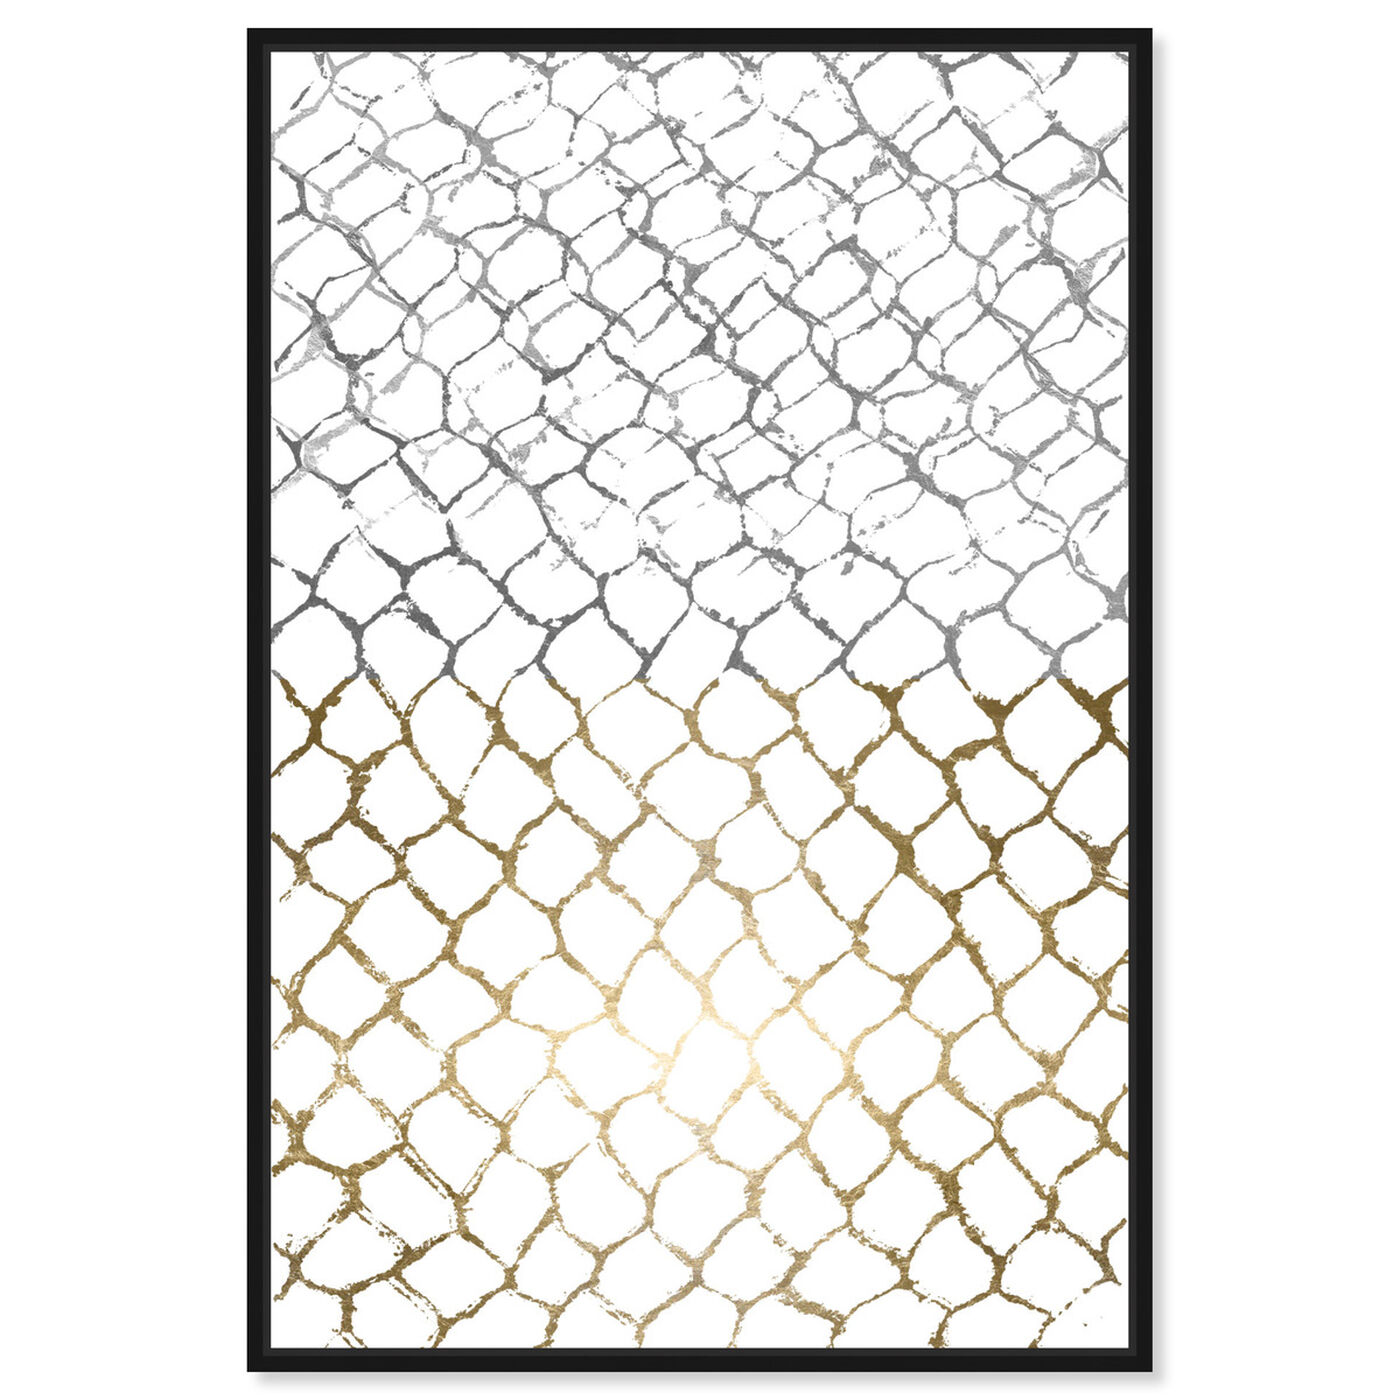 Front view of Organic Net featuring abstract and geometric art.